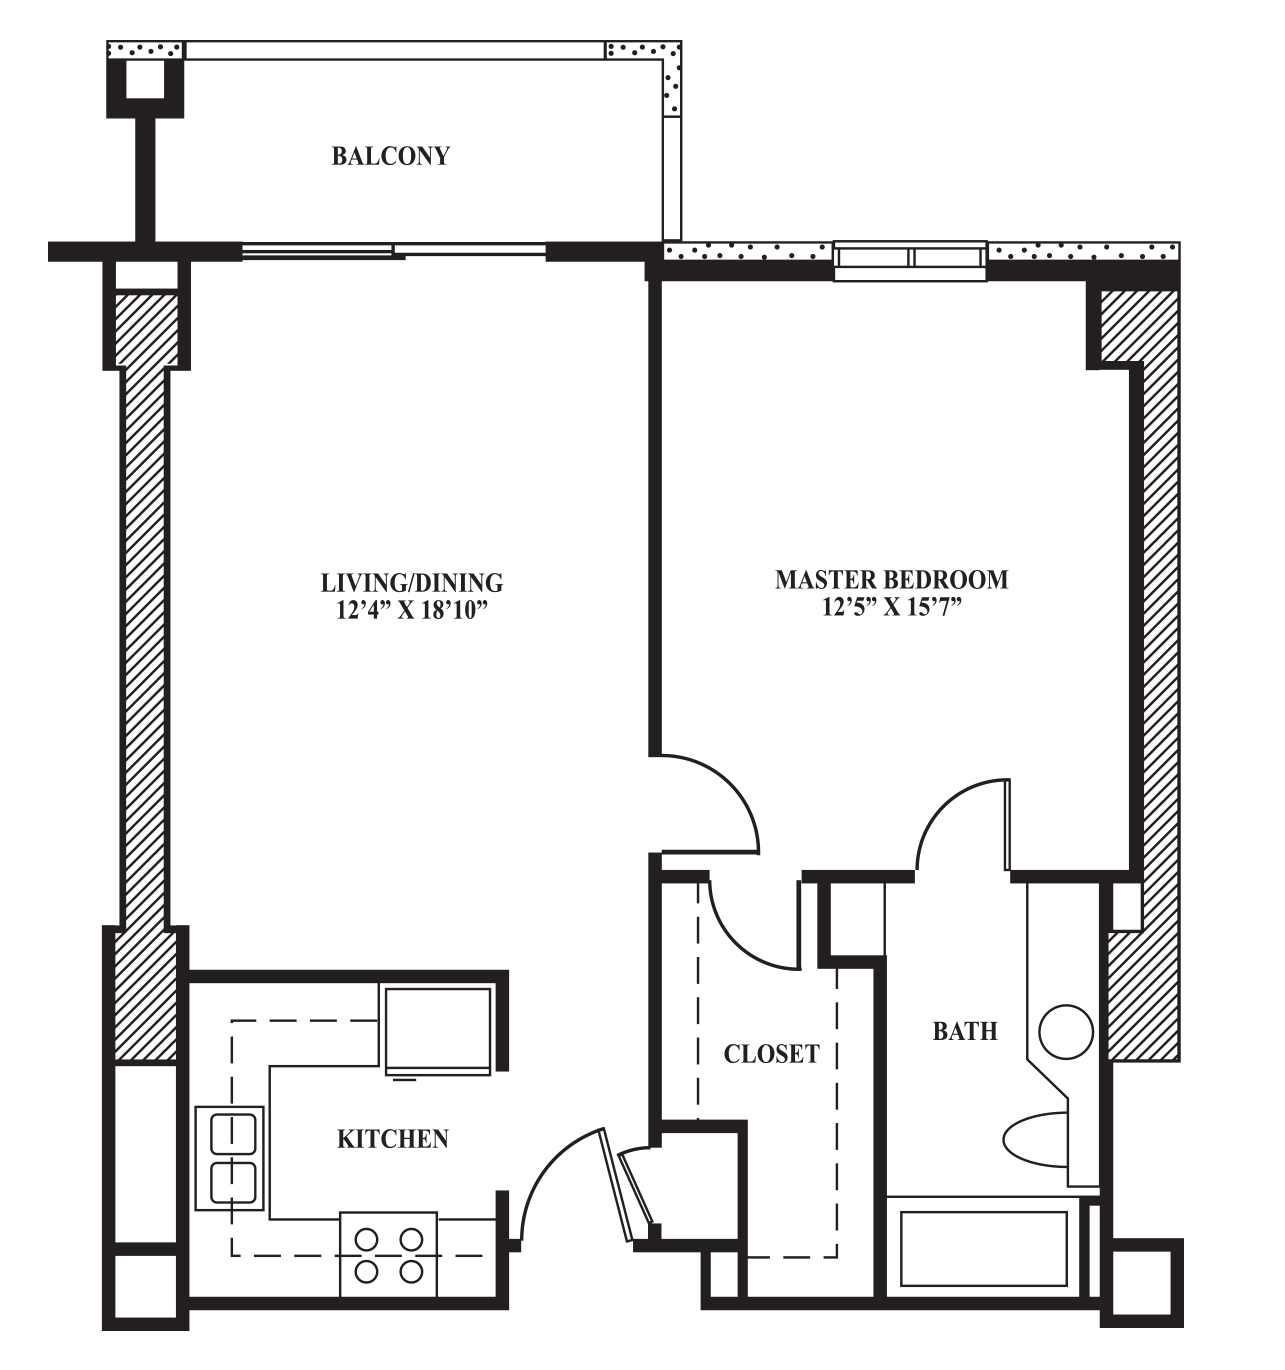 Floor plan a 688 sq ft the towers on park lane for Bathroom 8 x 8 layouts